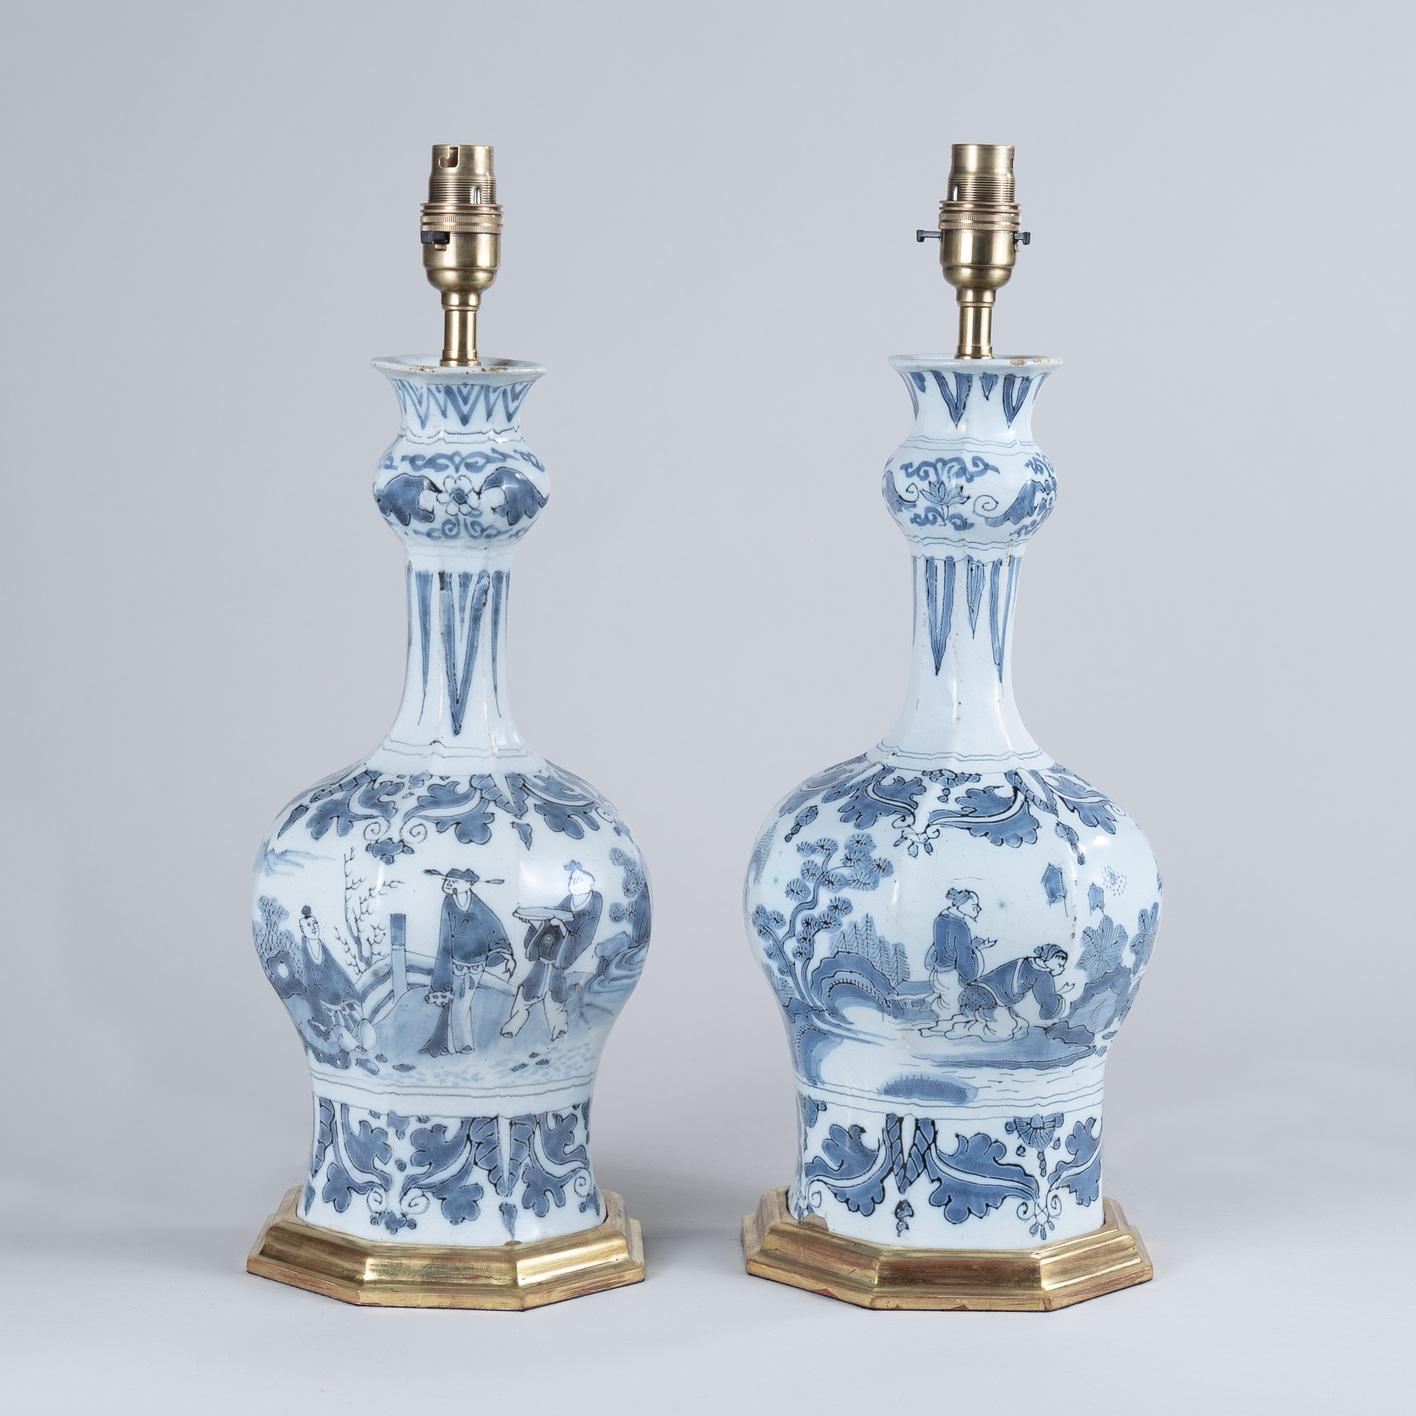 A Pair of 18th Century Dutch Delft Vases as Lamps